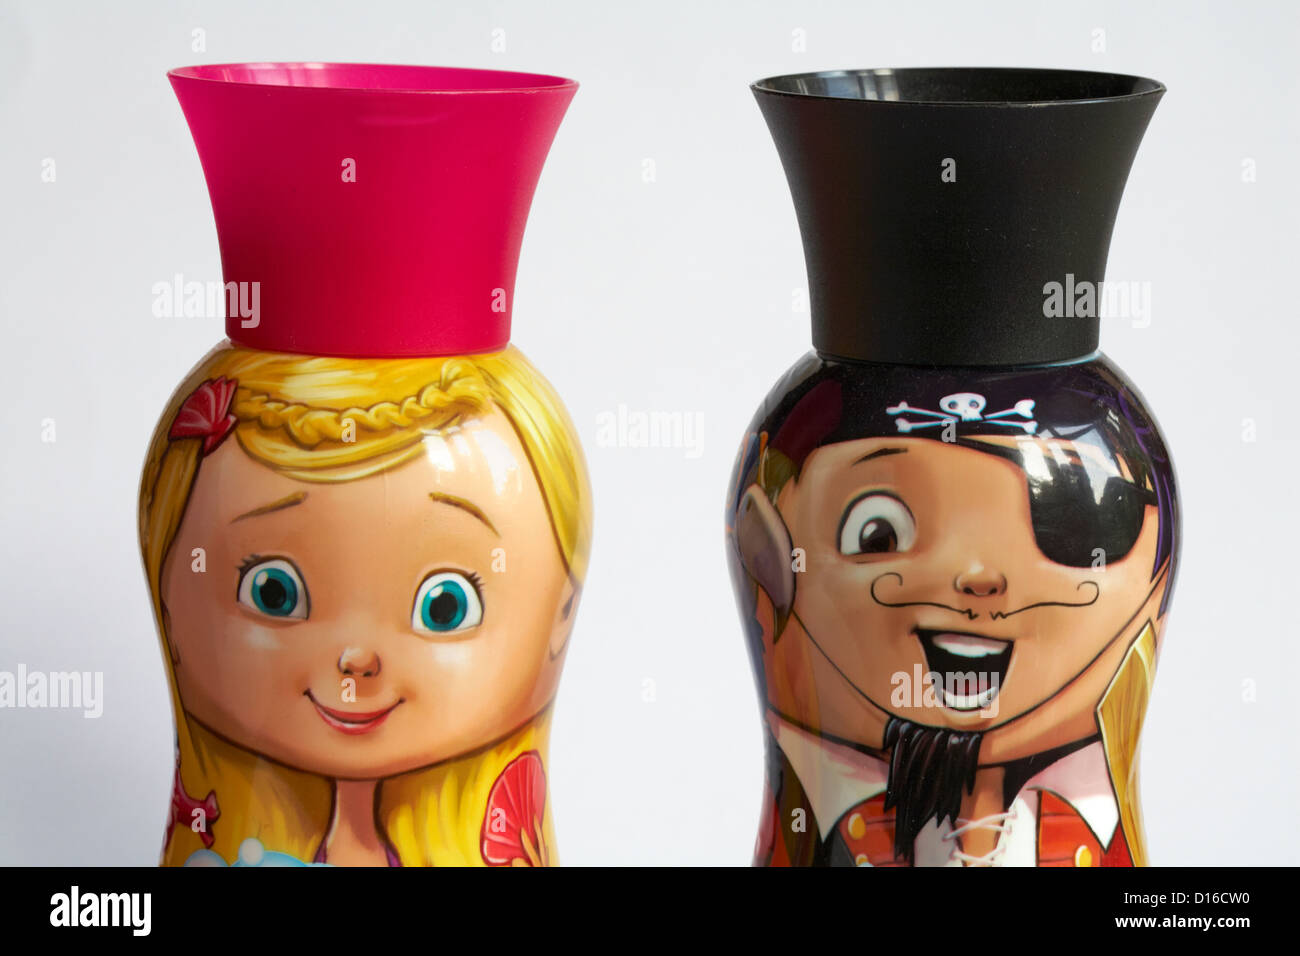 Two bottles of hypoallergenic formulation matey bubble bath adventurers Pegleg pirate and Molly Mermaid set on white - Stock Image